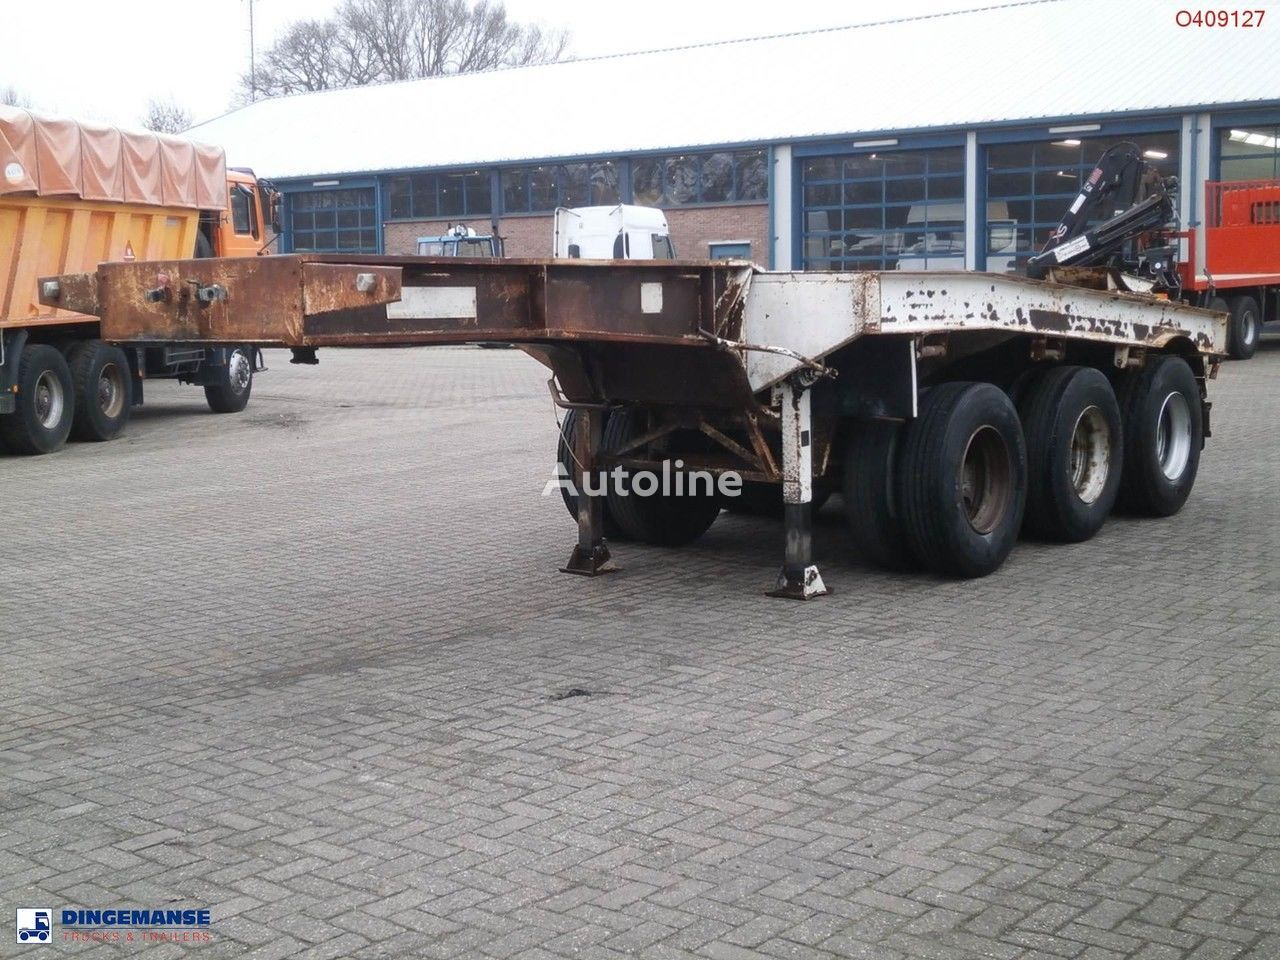 TRAYL-ONA 3-axle dolly trailer / 62000 kg container chassis semi-trailer